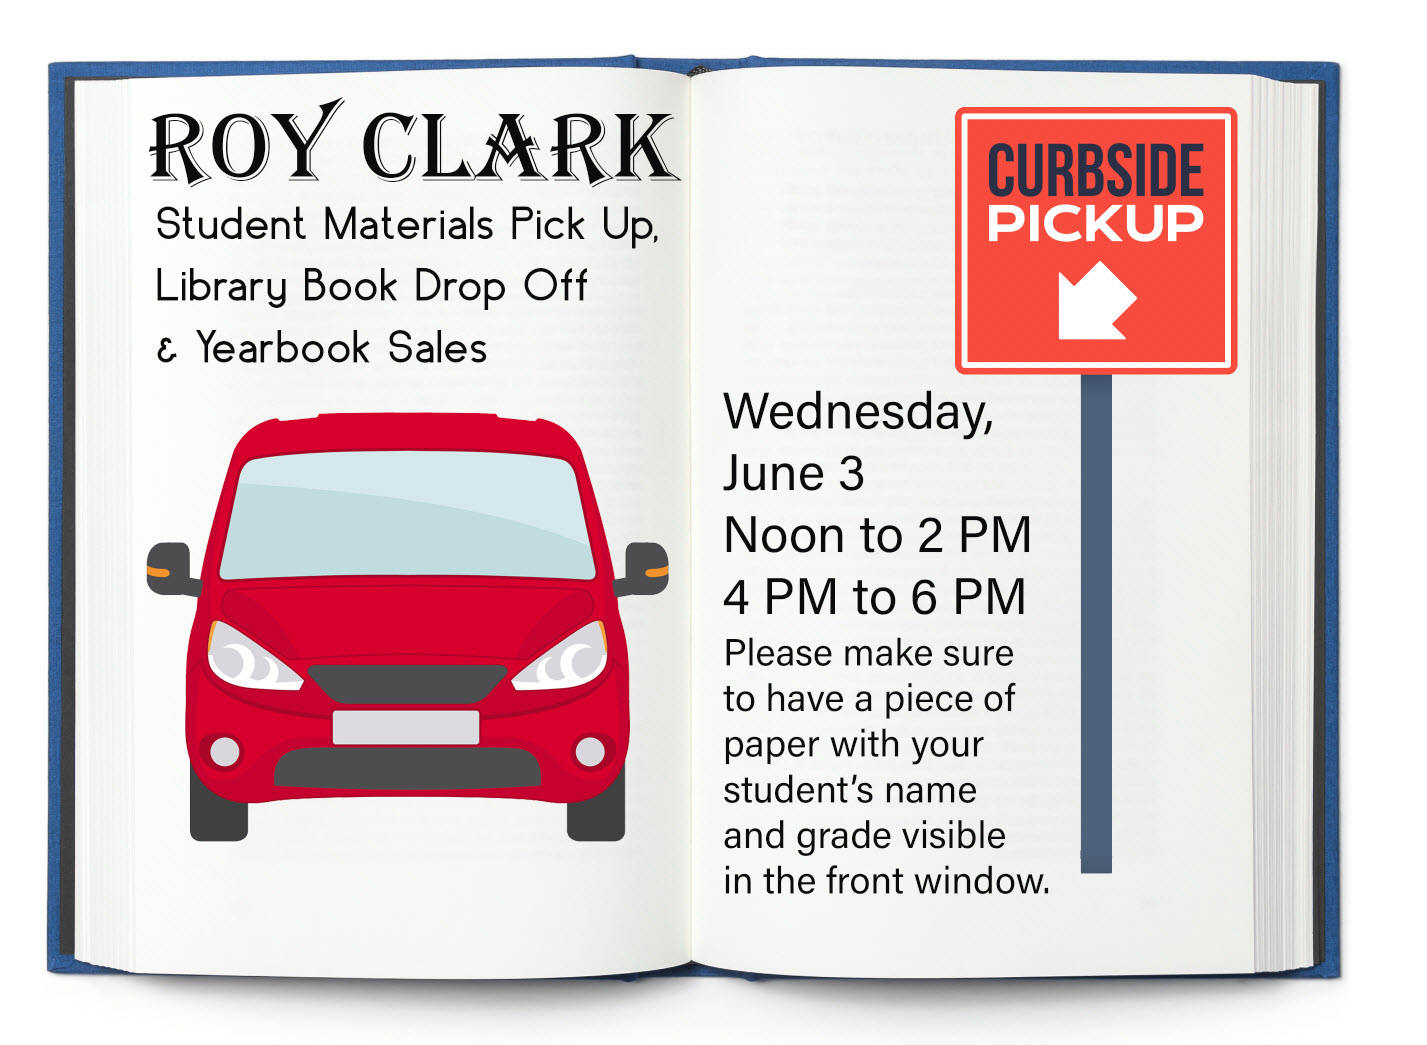 Attention Roy Clark families: Mark your calendars for Wednesday. June 3for student material pick up, library book drop off and yearbook sales. During the hours of Noon to 2p.m. and 4 to 6 p.m.you can drive through the Clark car loop for pick-up. Please make sure to have a piece of paper with your students name and grade visible in the front window. Student materials will be brought to your car. There isno need to get out. Please gather and return all library books. If you purchased pictures and yearbooks they will be available for pick up at this time also. If you have not yet purchased a yearbook, you may purchase one for $15 cash while supplies last. We can't wait to see you.